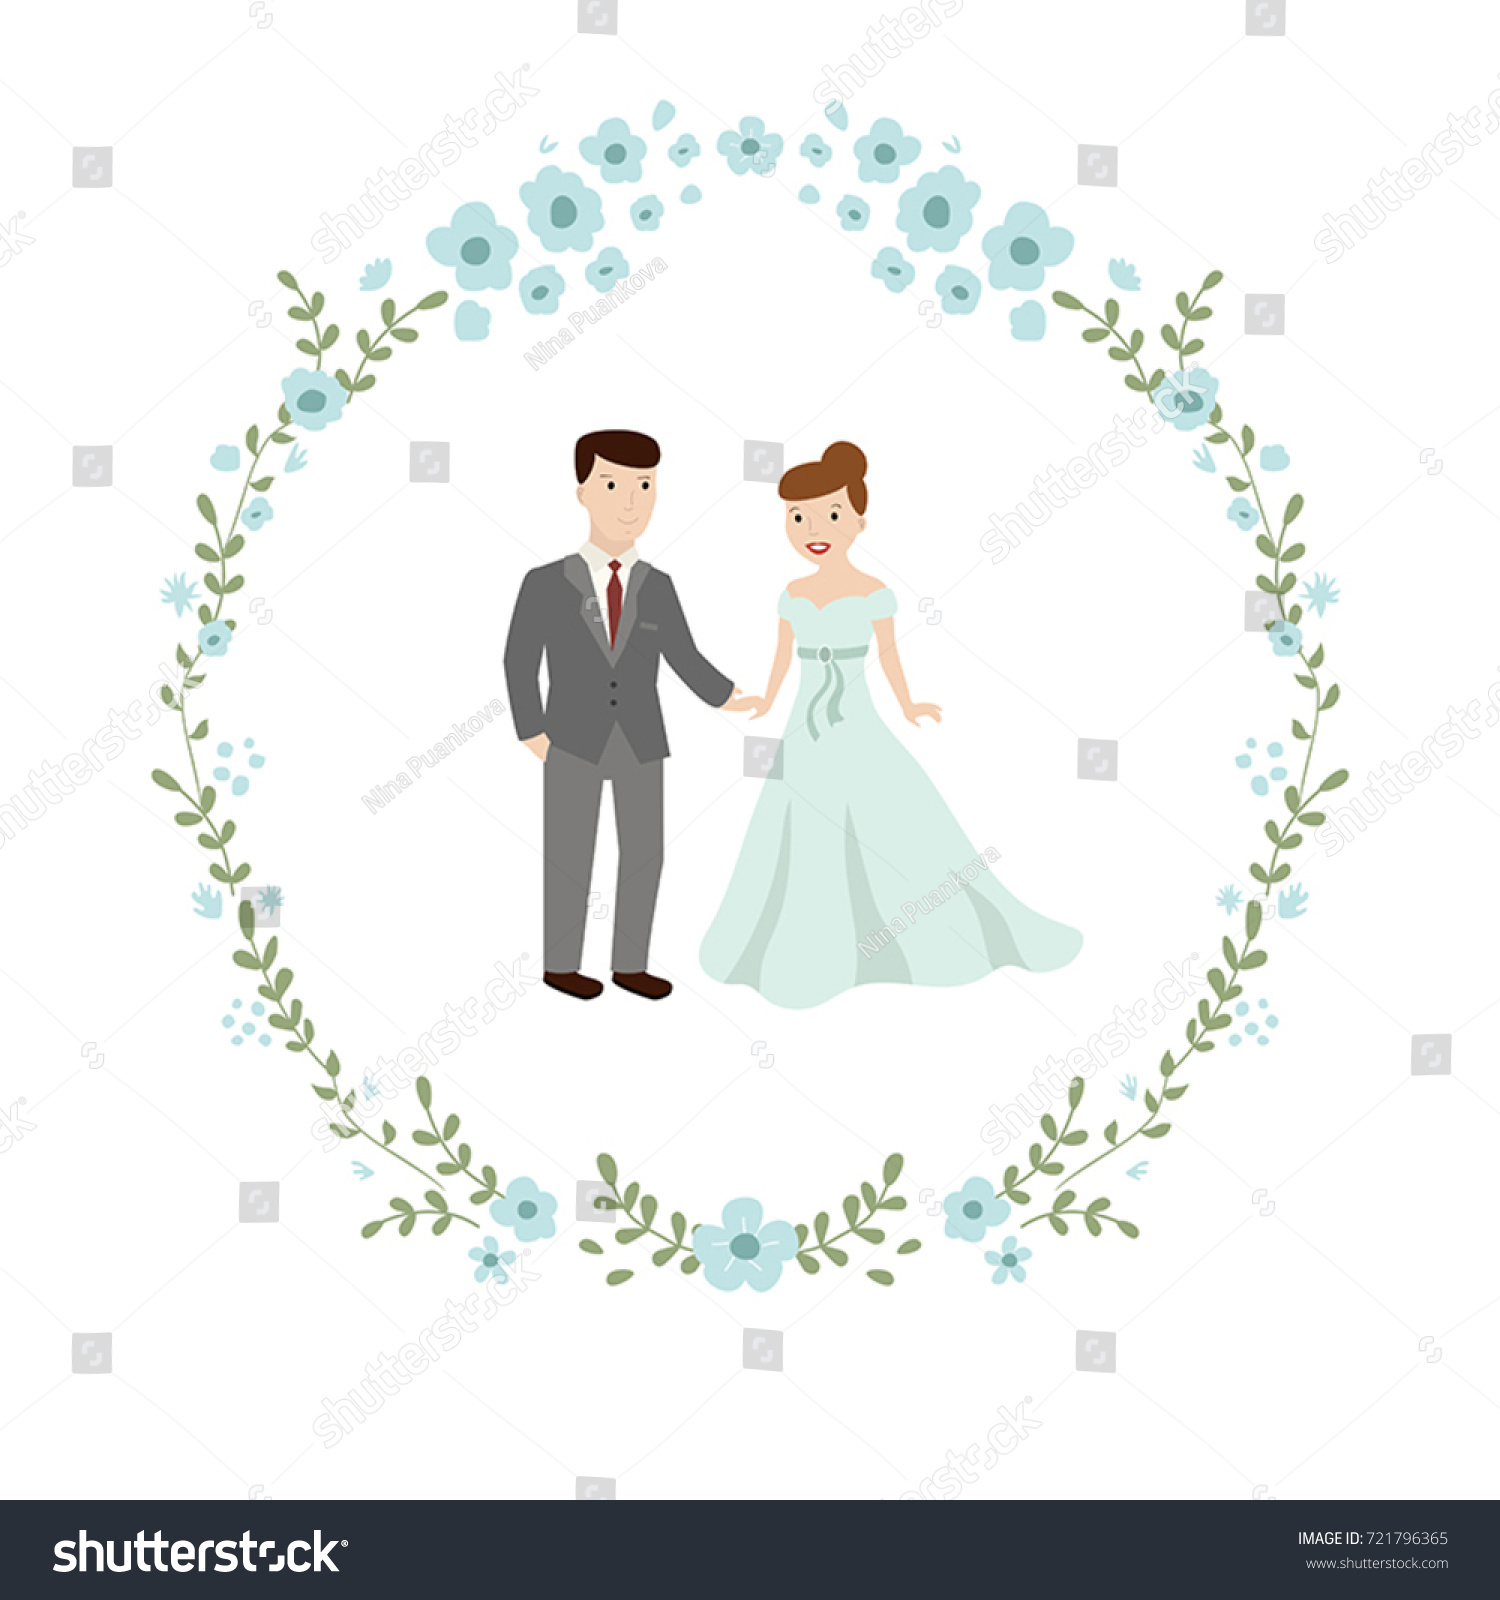 Save Date Wedding Invitation Bride Groom Stock Vector HD (Royalty ...